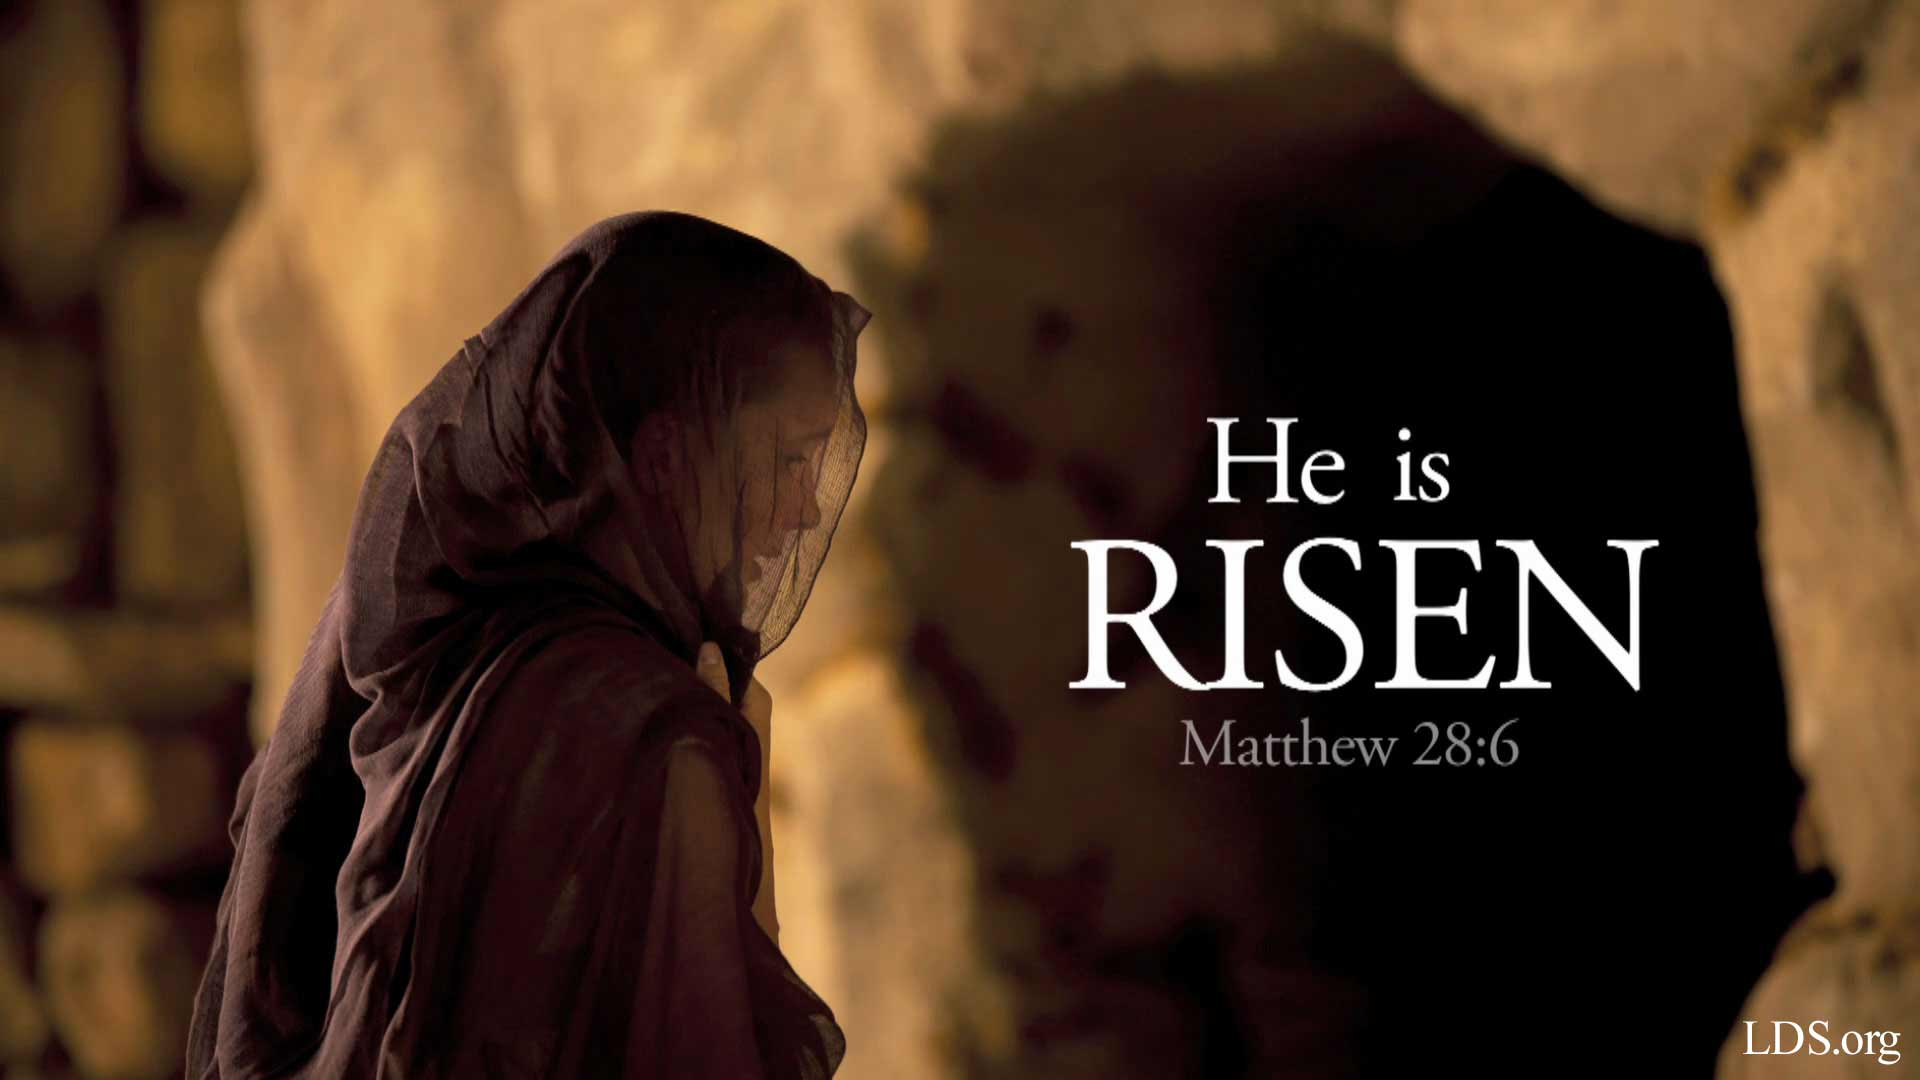 he is risen eng?lang=eng&download=true images and memes